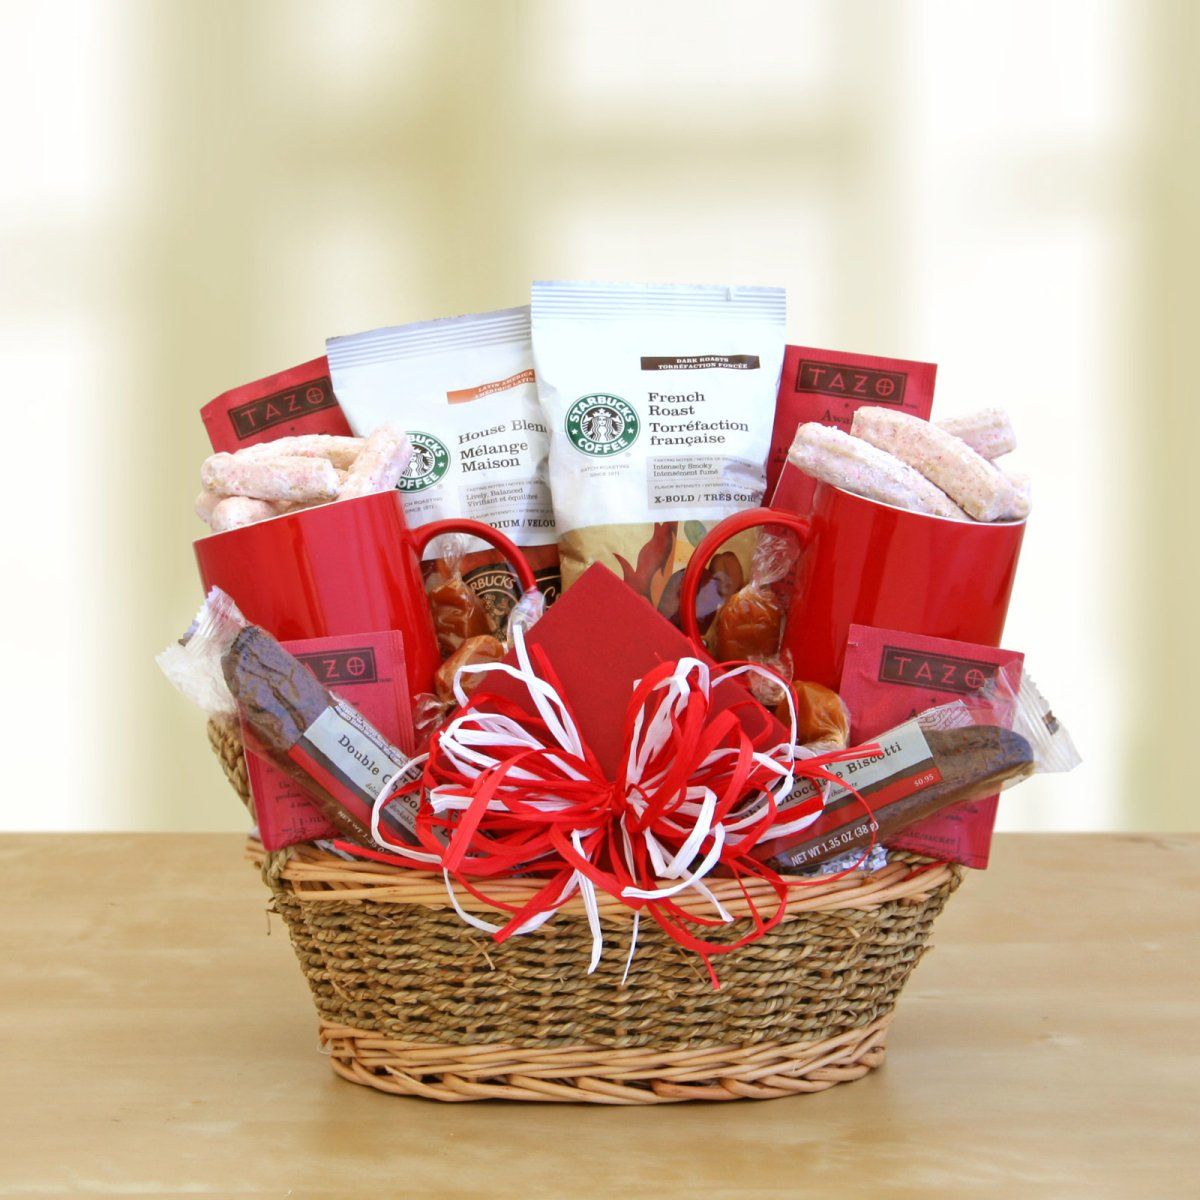 Sharing Starbucks Gift Basket Starbucks gift baskets